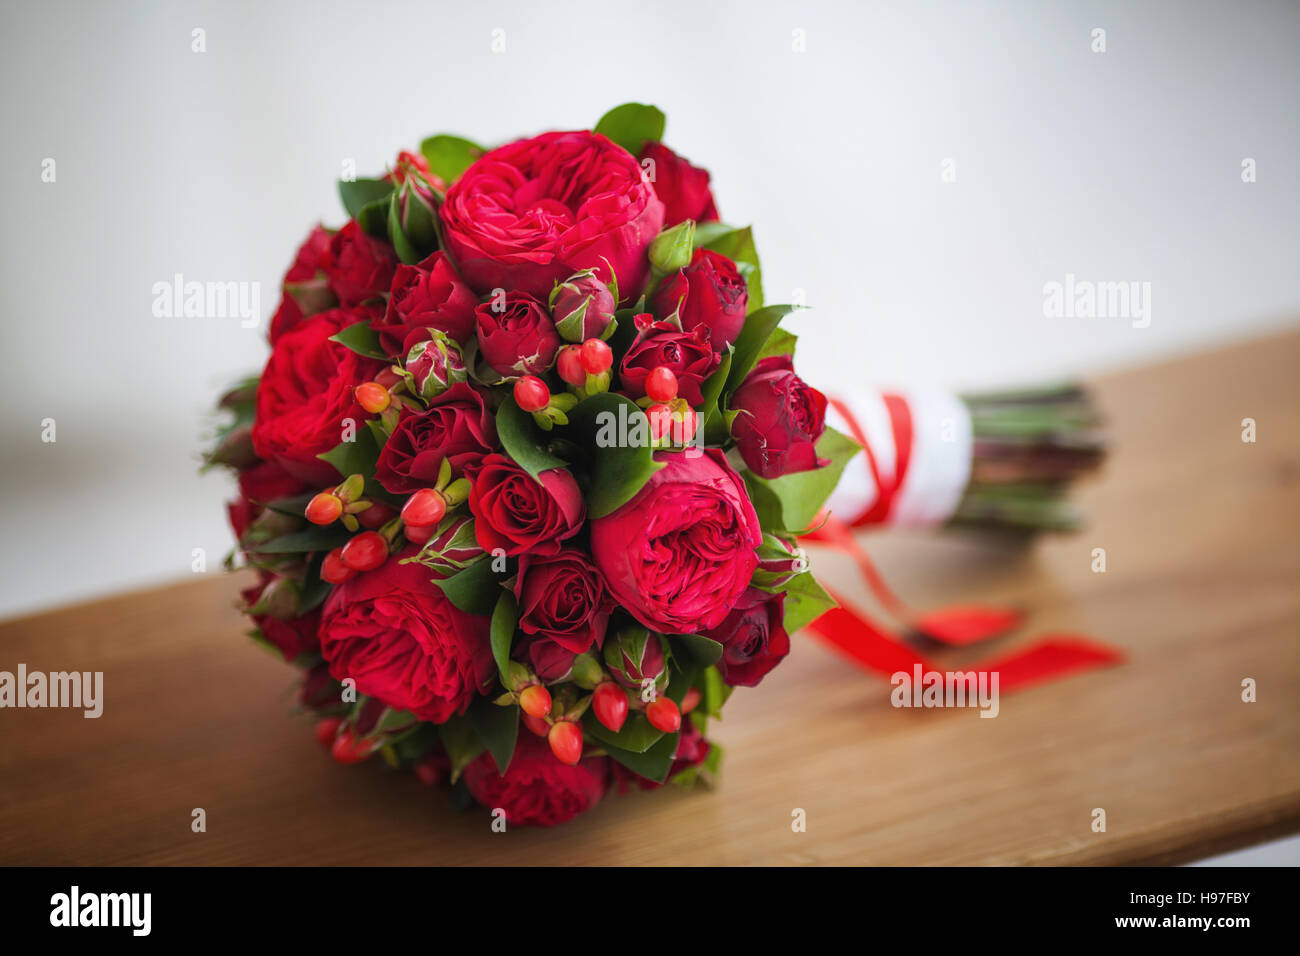 Hochzeitsstrauß Weinrot Wedding Bridal Bouquet Of Big Red Roses Stock Photo 126170239 Alamy